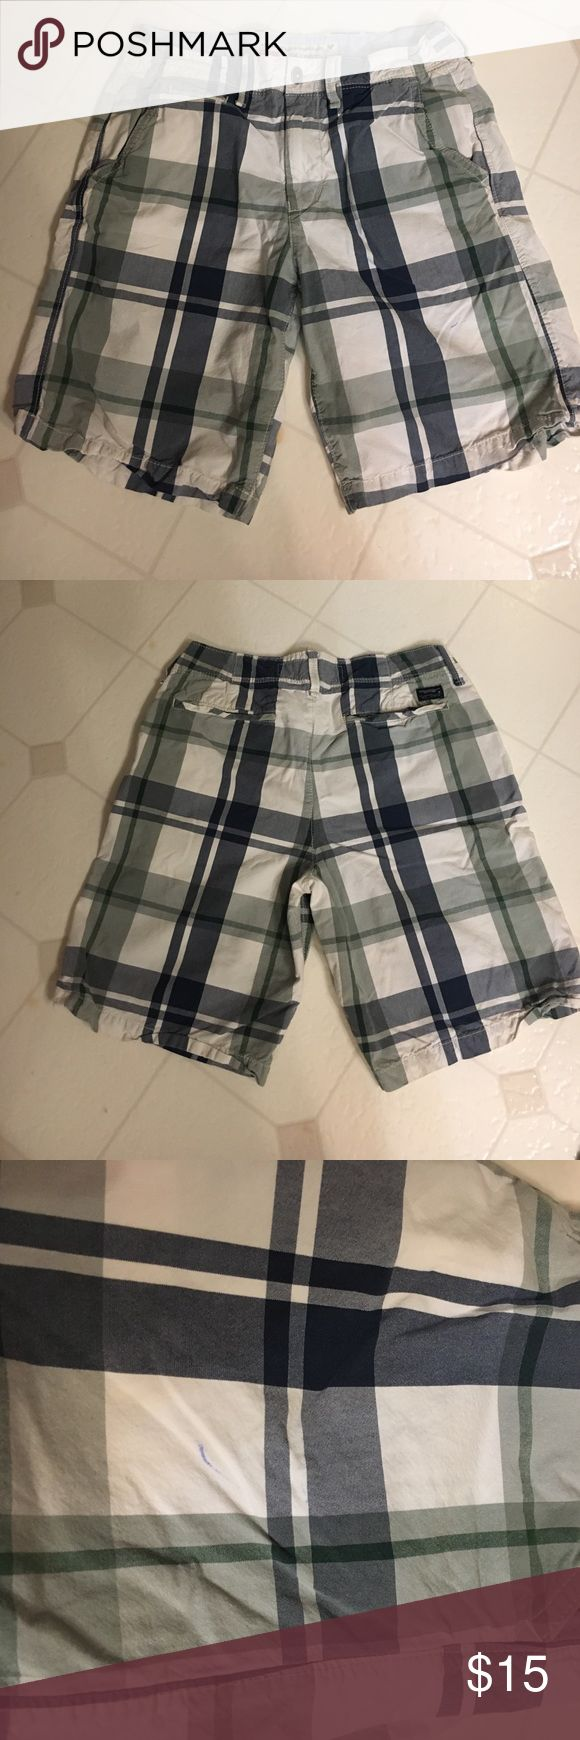 Men's plaid shorts American Eagle classic length blue, white & grey plaid shorts. Small ink stain on front shown in picture. American Eagle Outfitters Shorts Flat Front